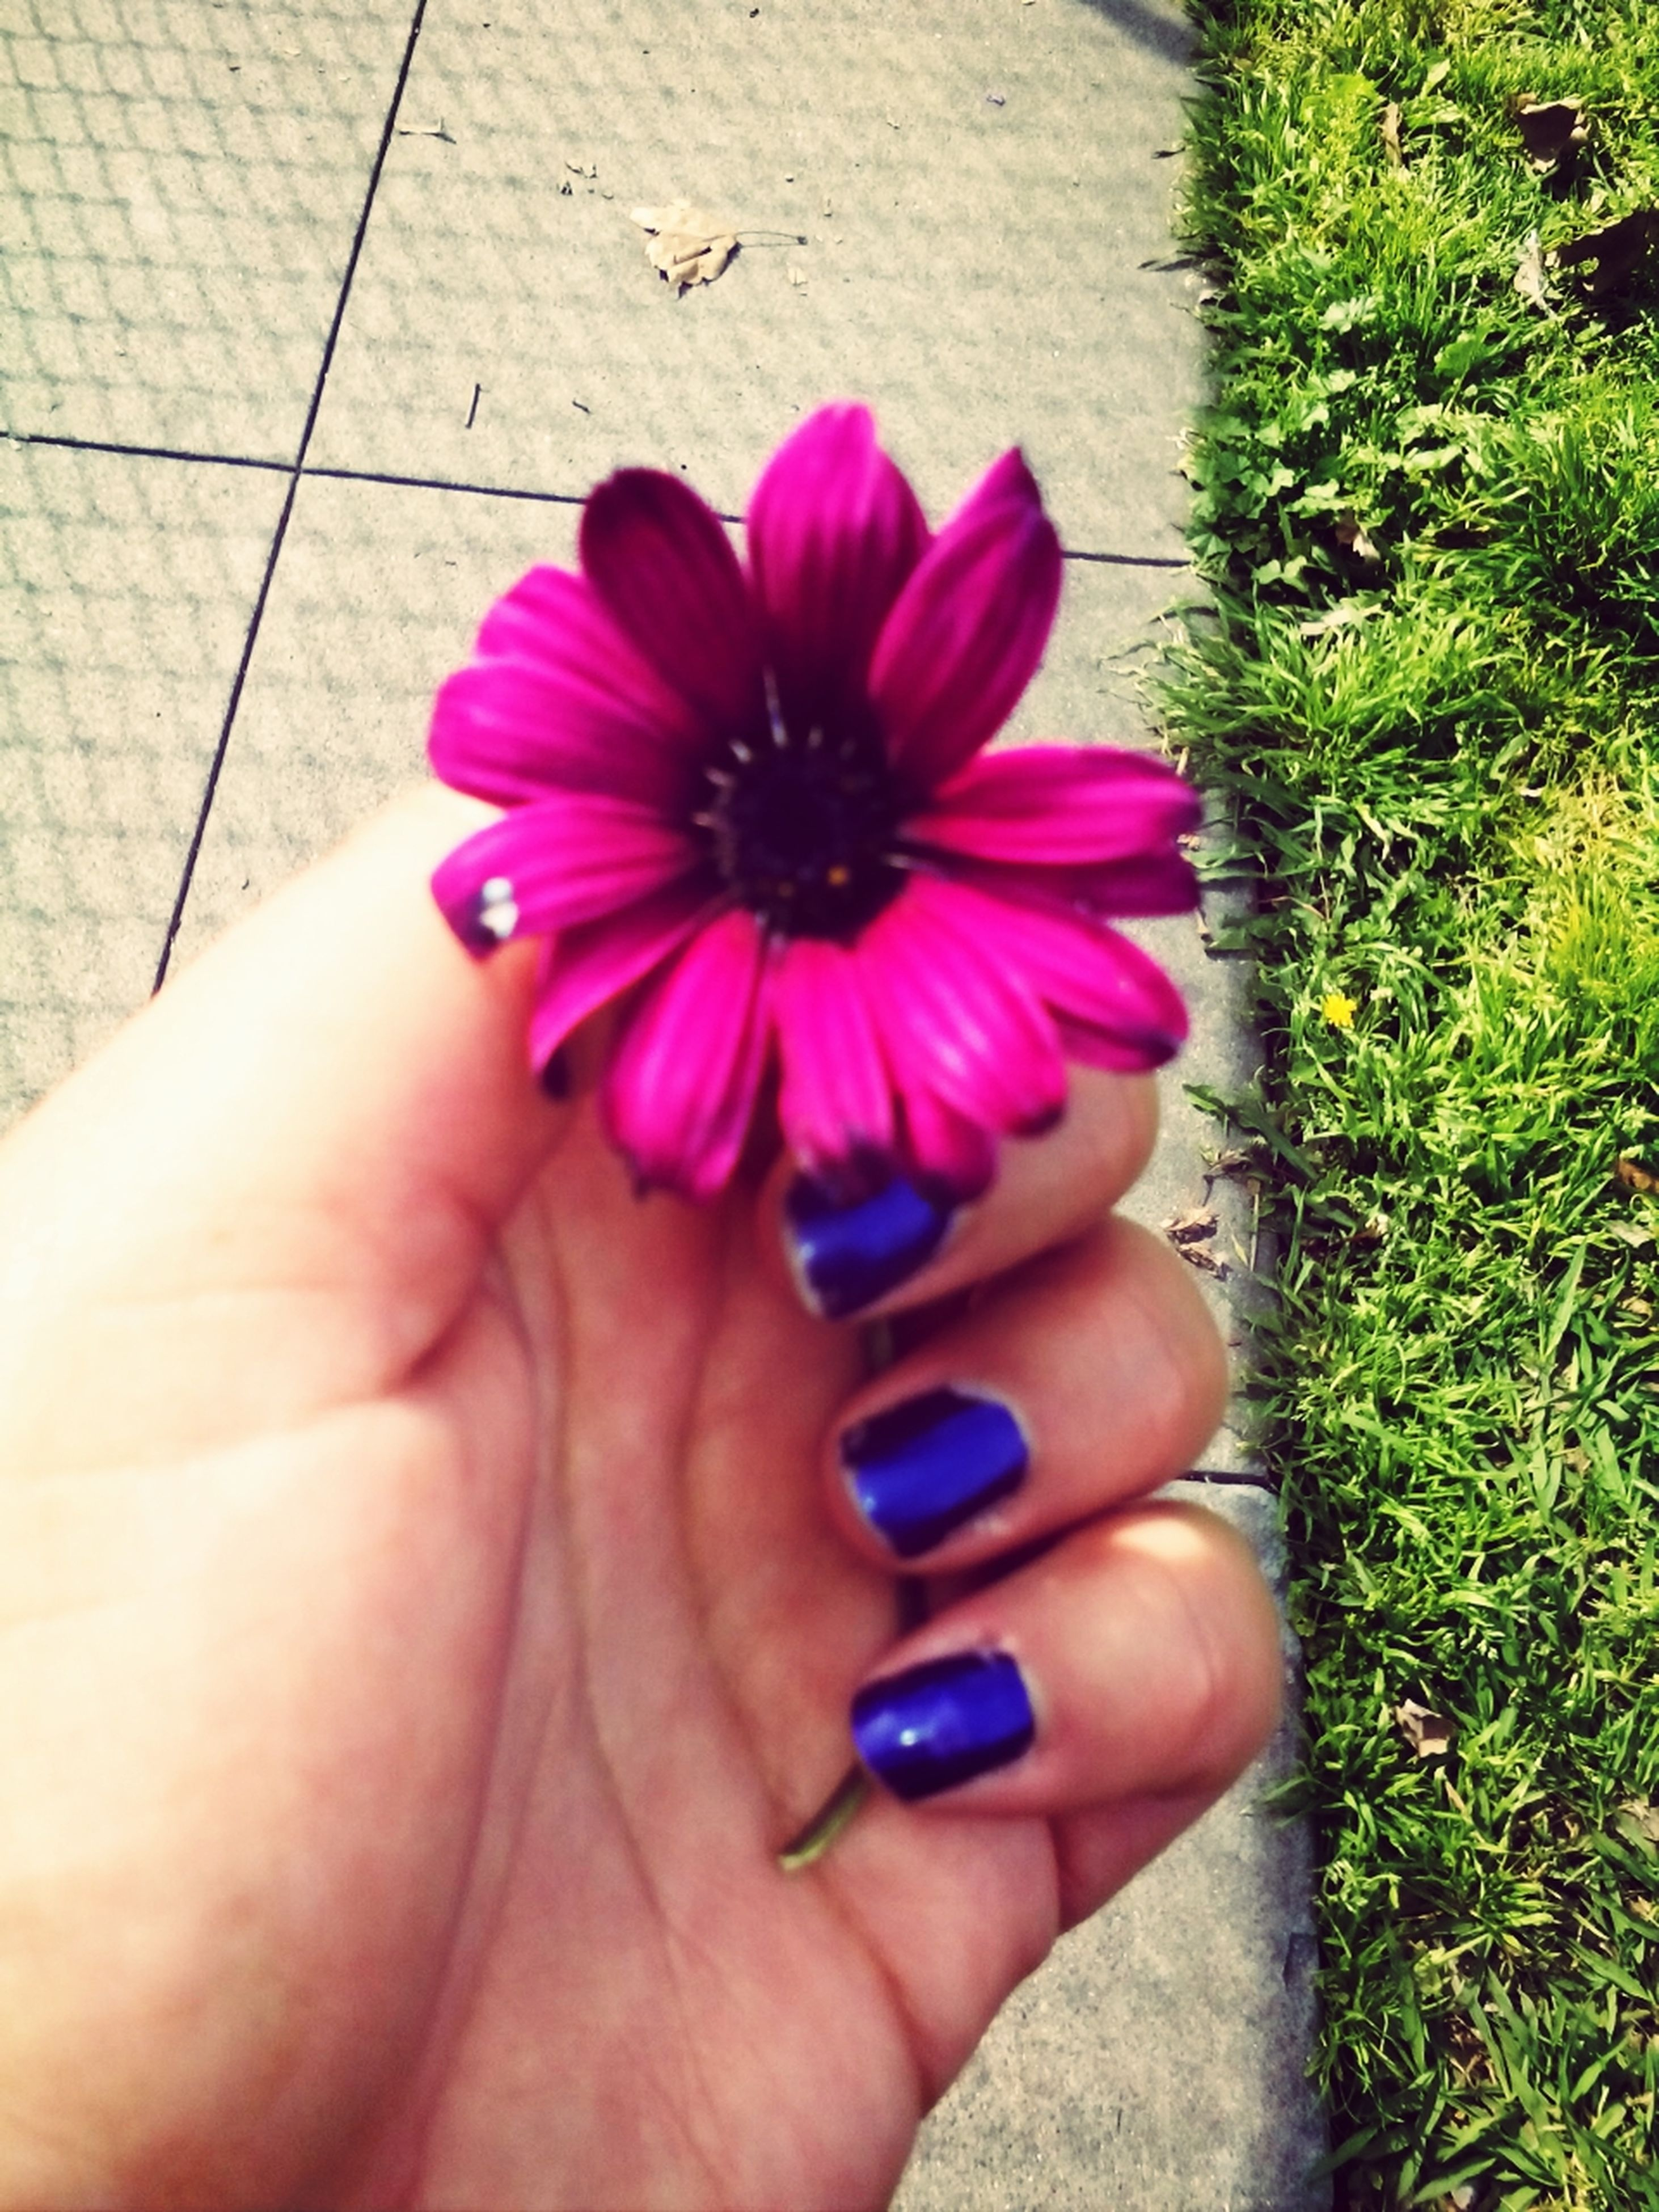 person, flower, holding, freshness, personal perspective, high angle view, part of, petal, fragility, flower head, human finger, cropped, unrecognizable person, leisure activity, pink color, lifestyles